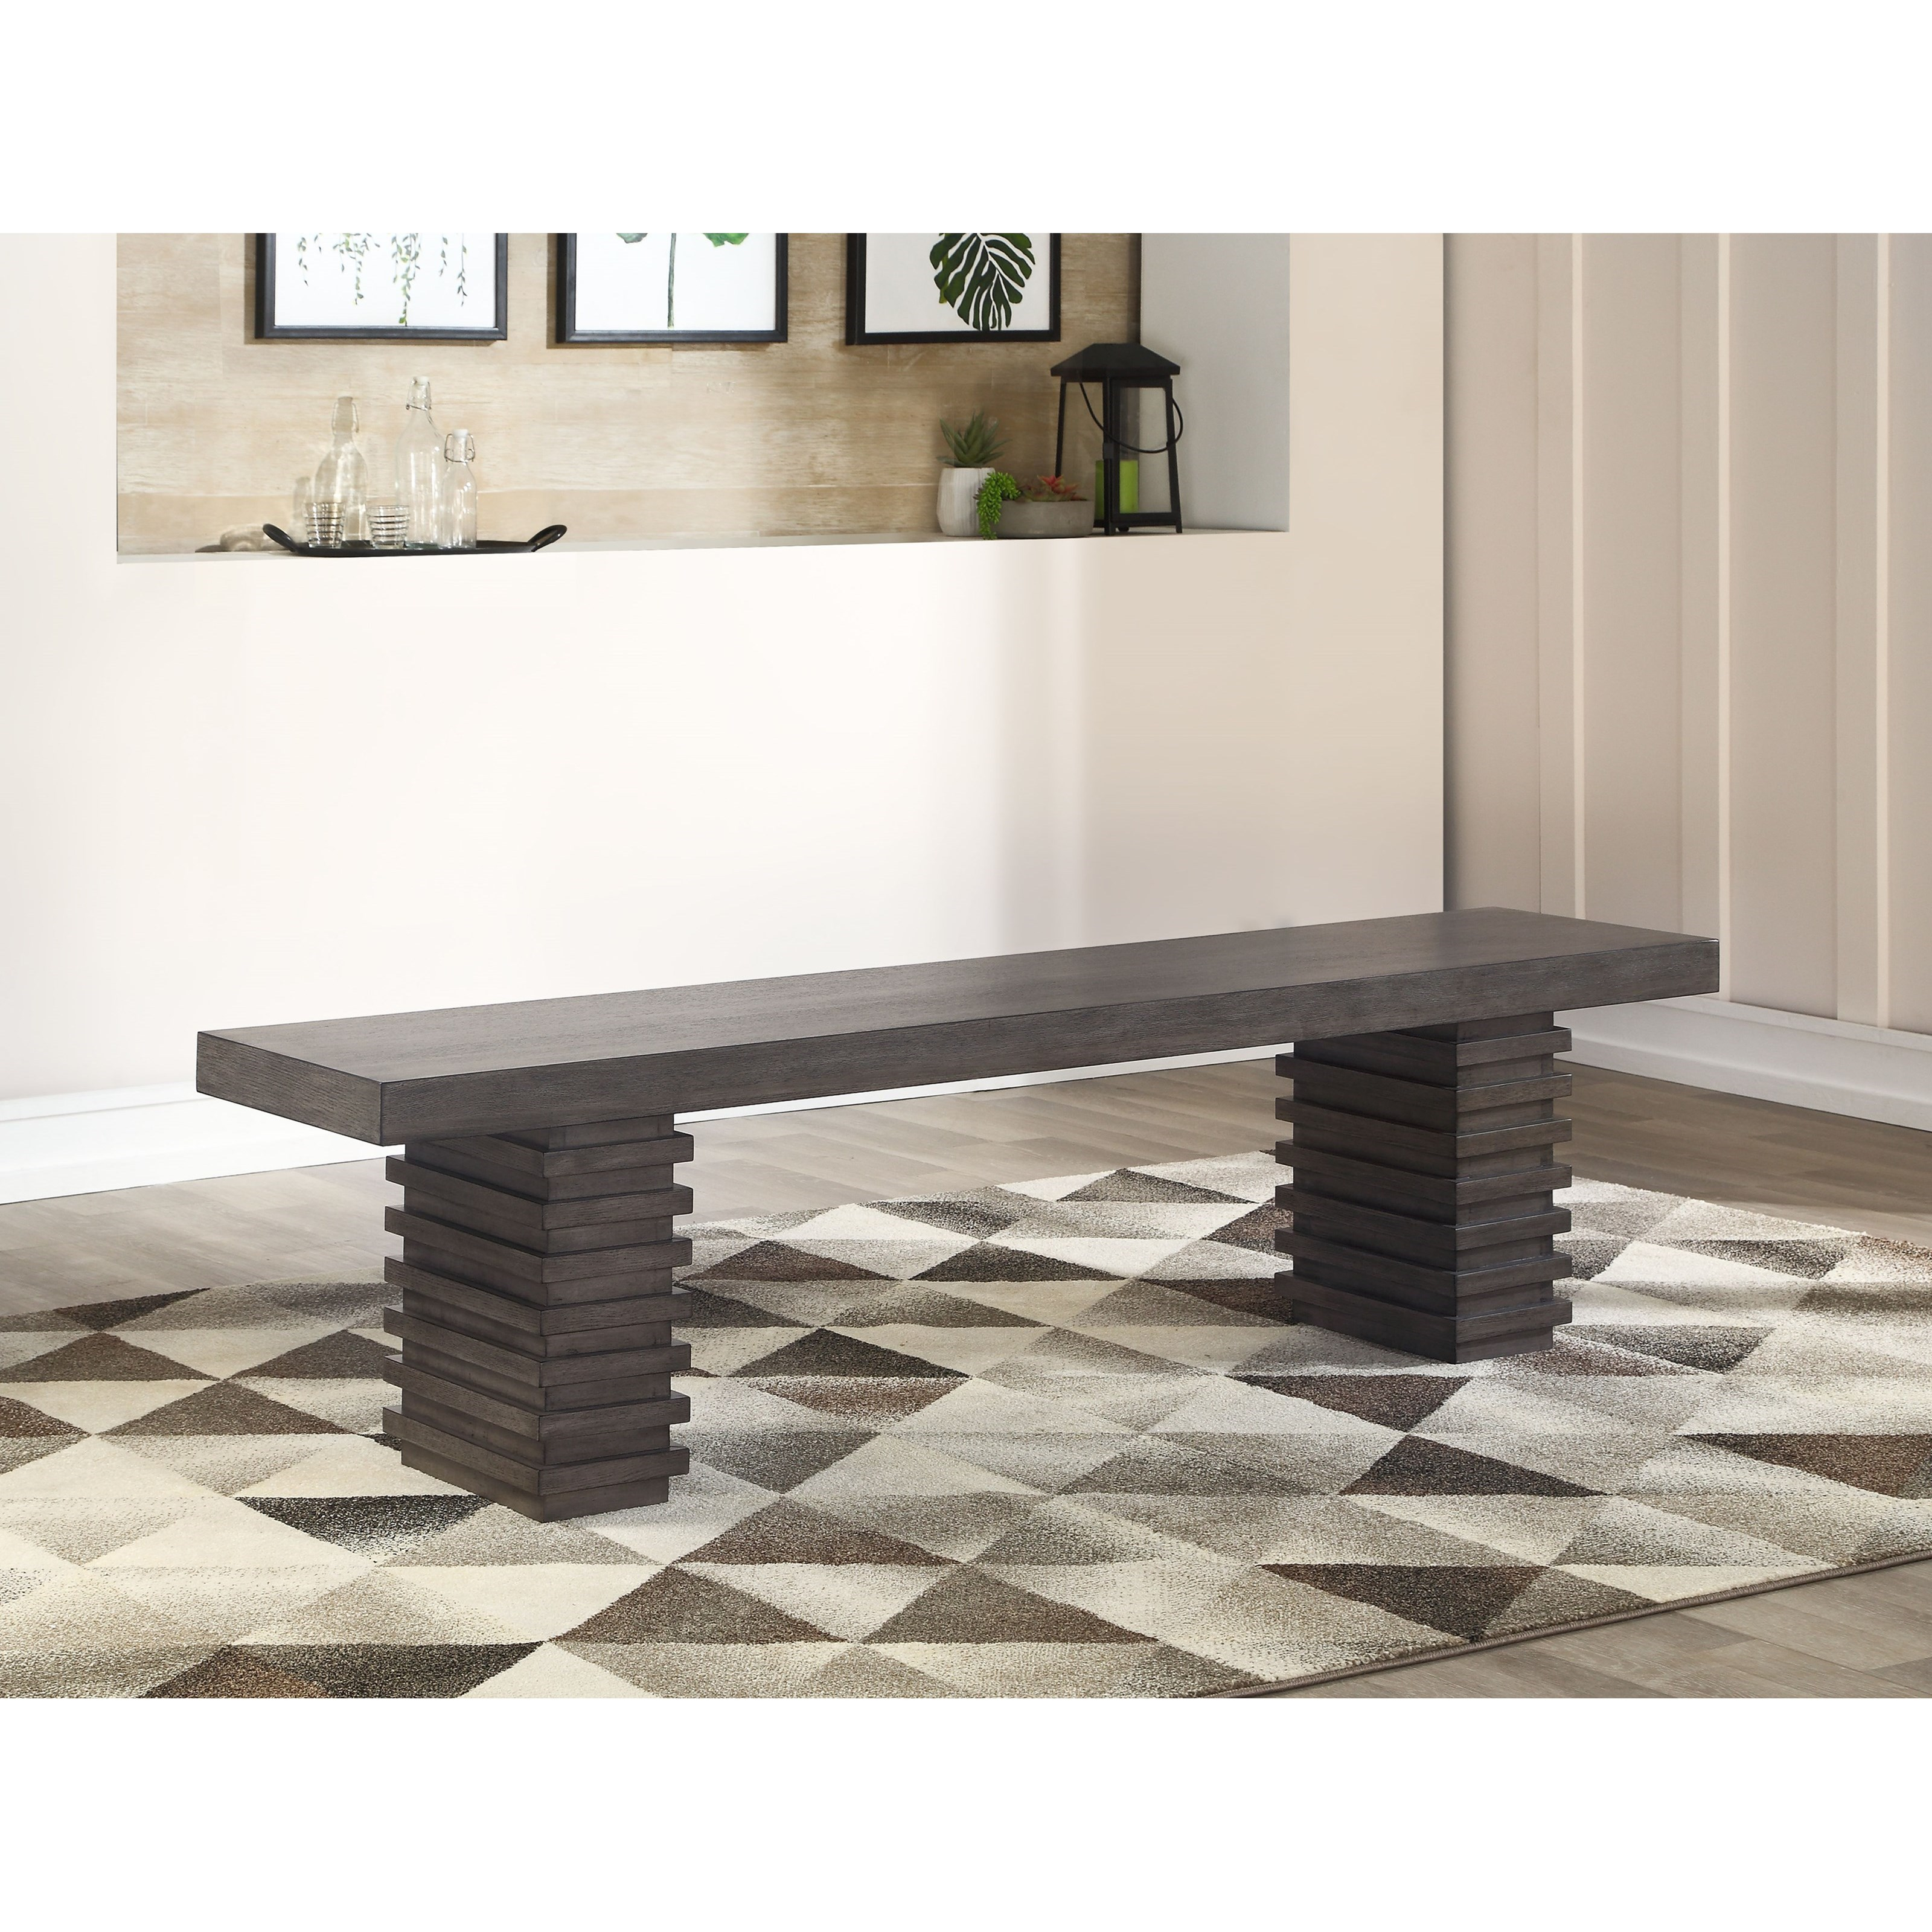 Mila Dining Bench by Steve Silver at Northeast Factory Direct